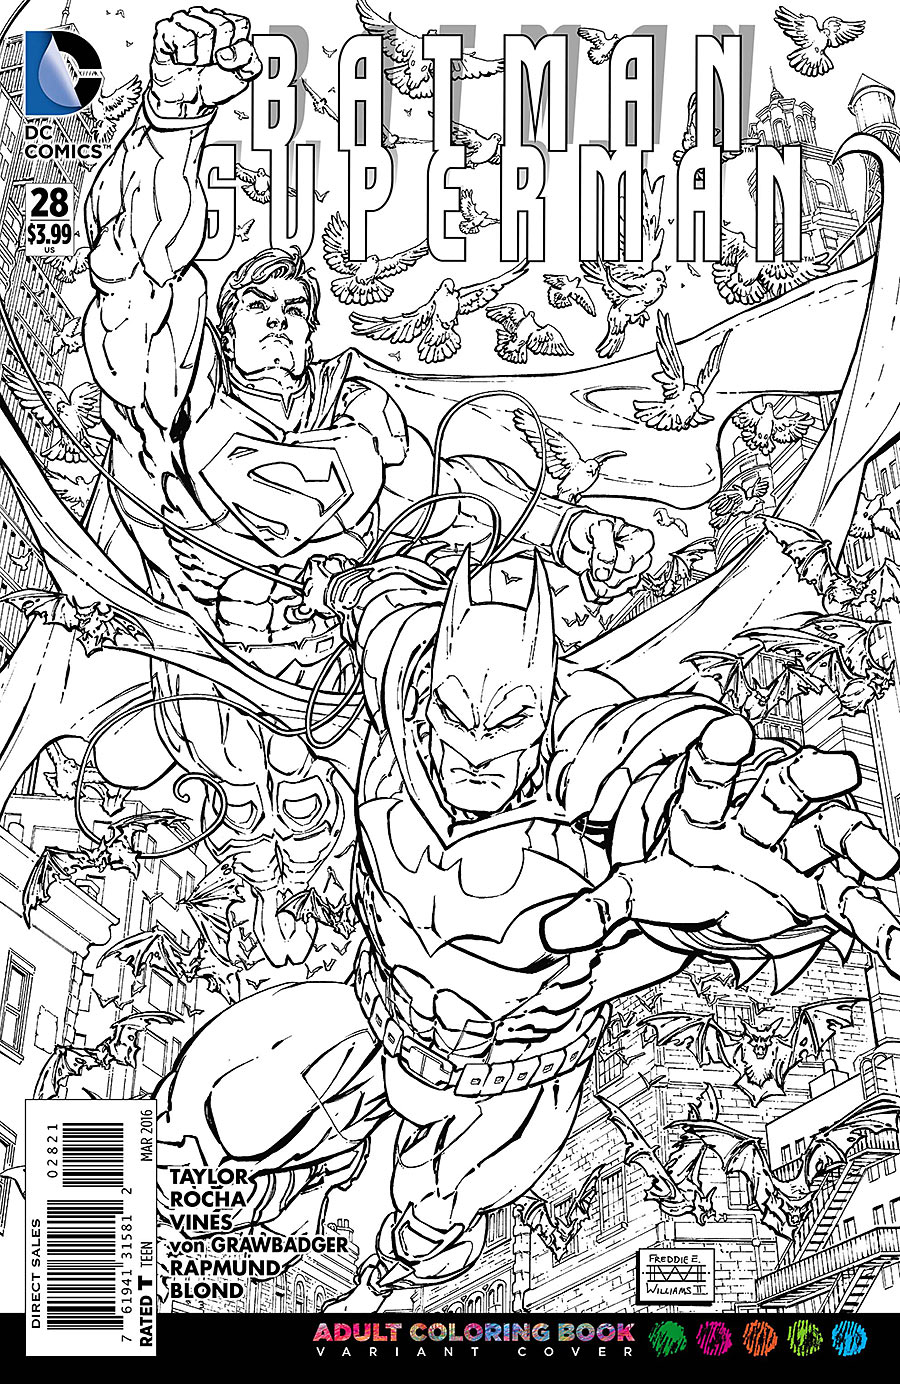 BATMAN SUPERMAN #28 ADULT COLORING BOOK VAR ED